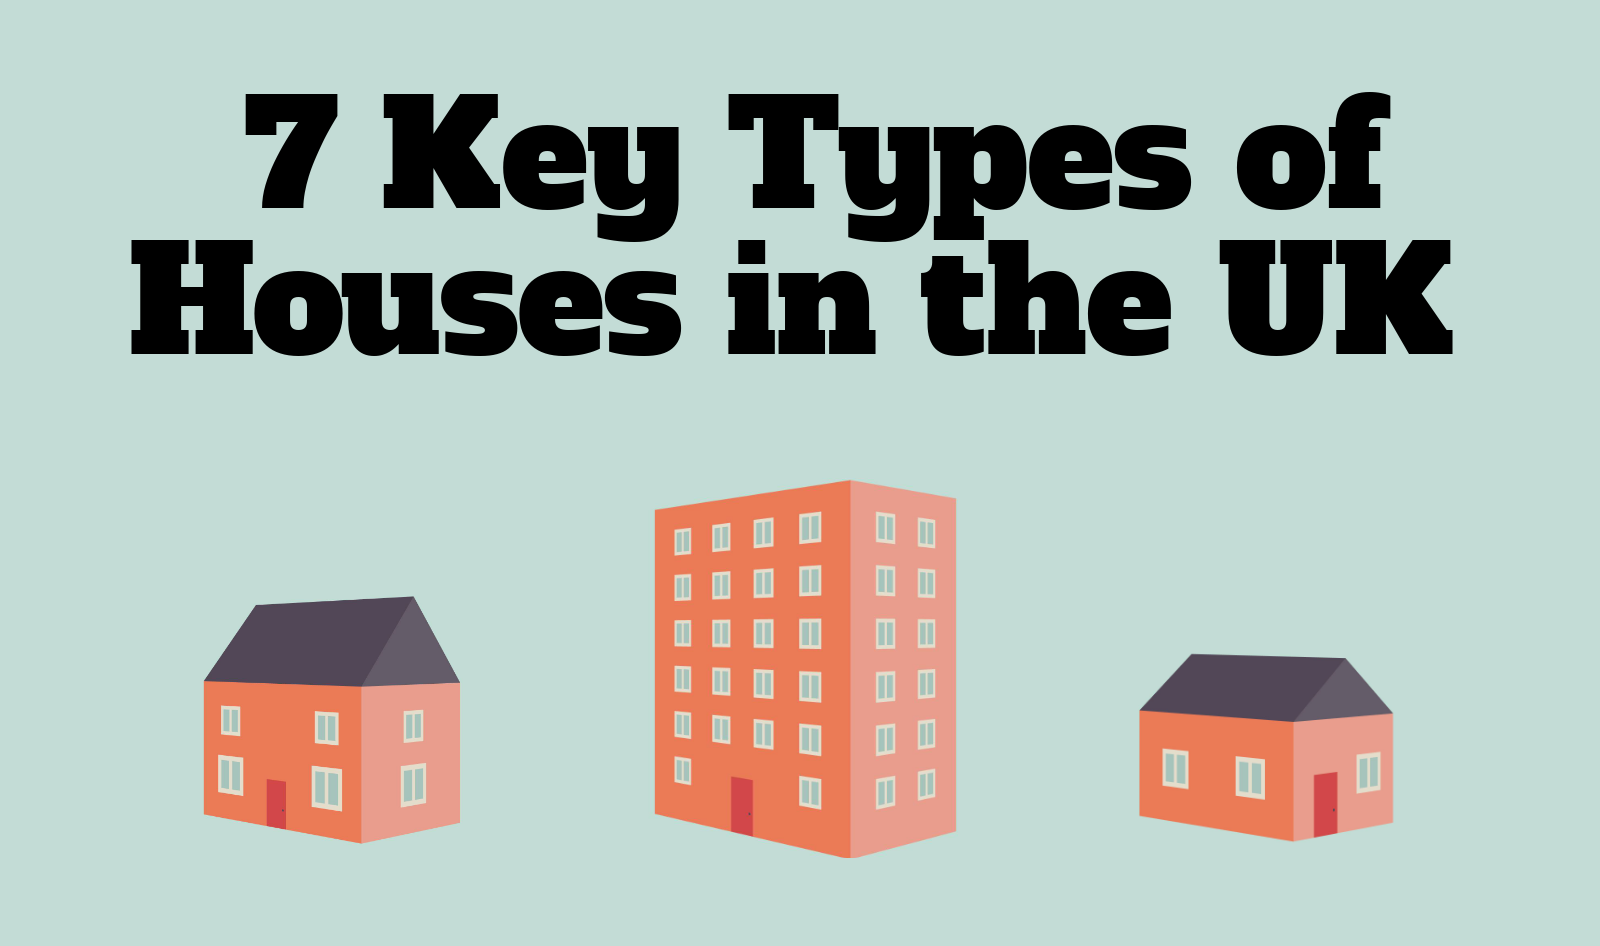 7 key types of houses you can buy in the UK